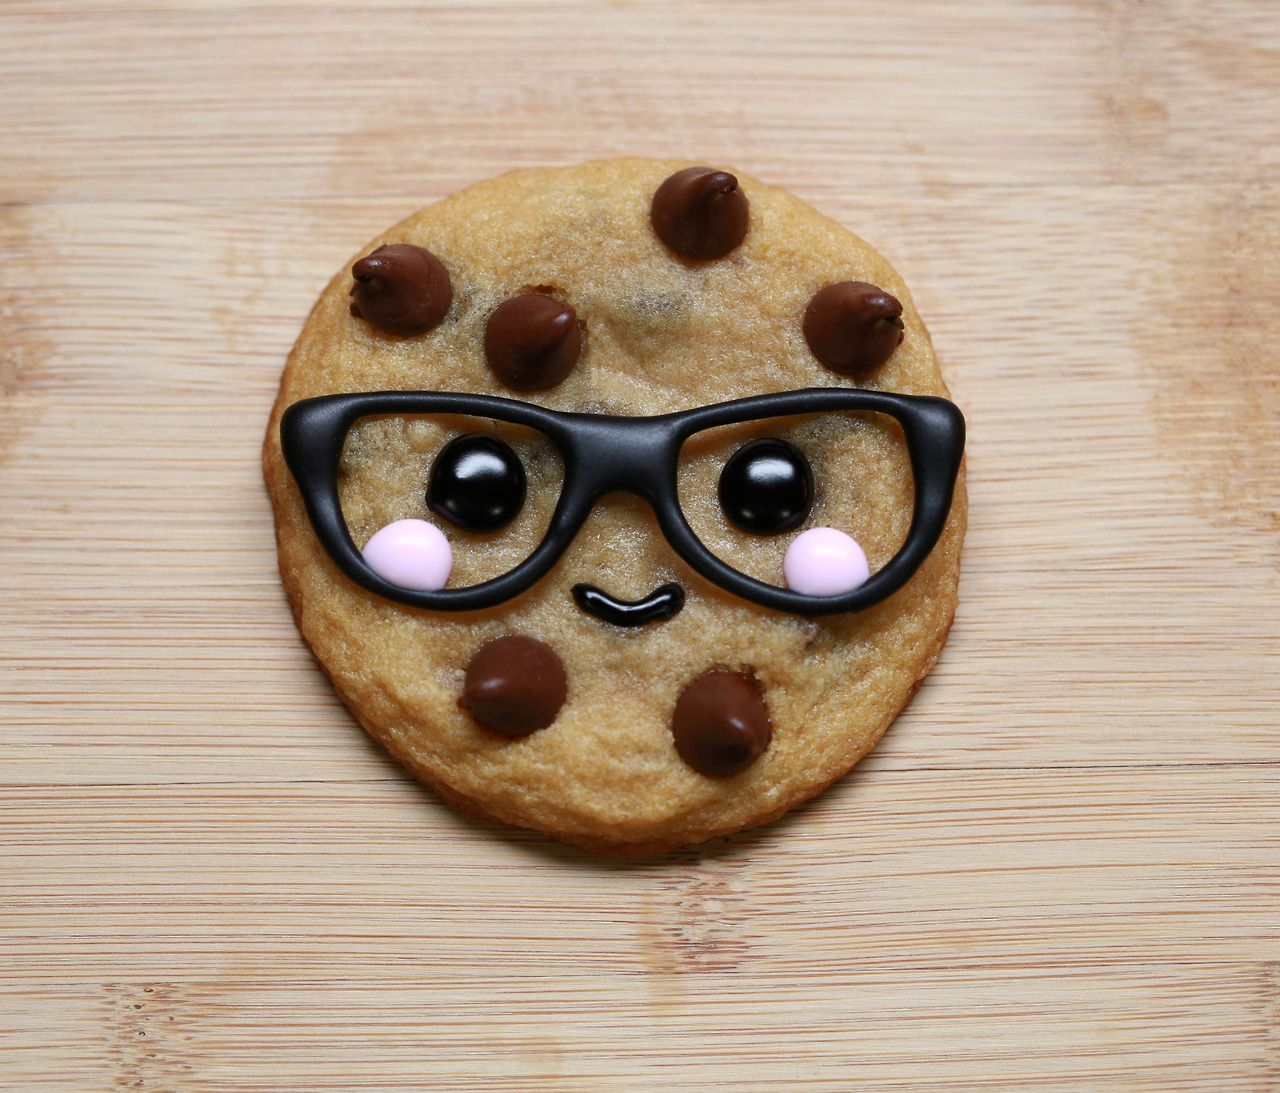 Yes I Know This Is A Real Cookie But I Want To Make One